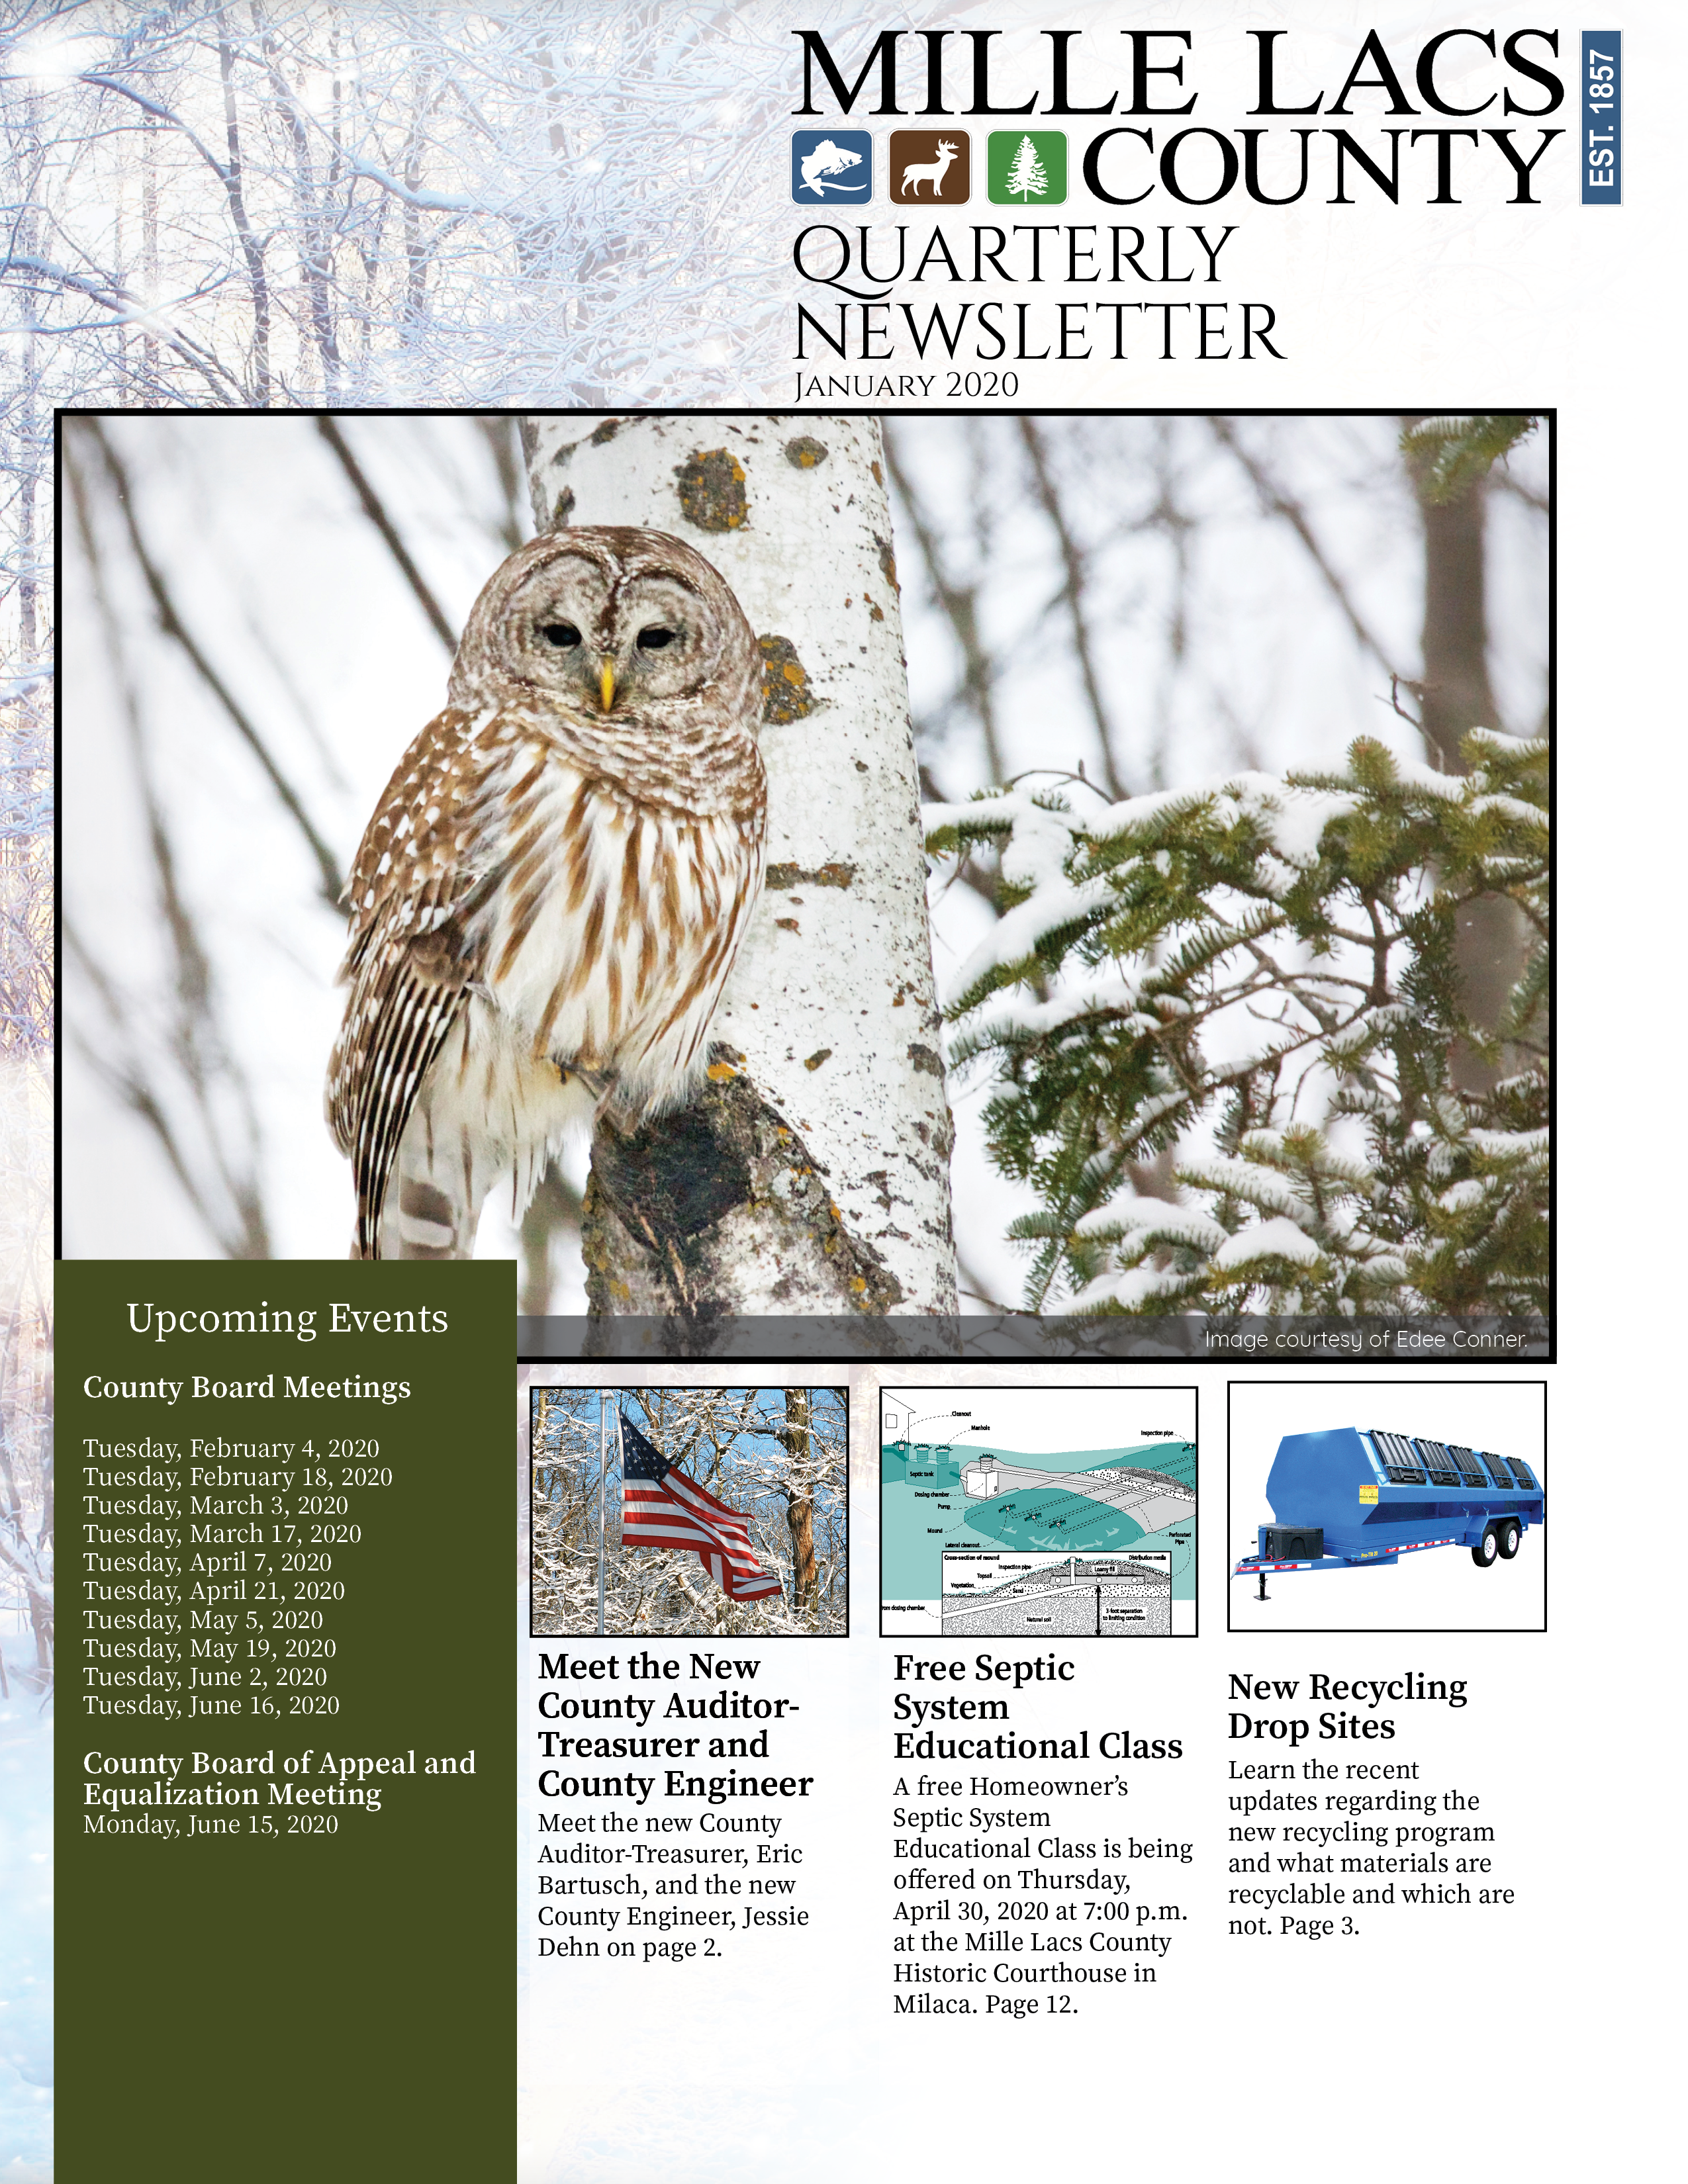 The front cover of the Mille Lacs County Quarterly Newsletter January 2020.